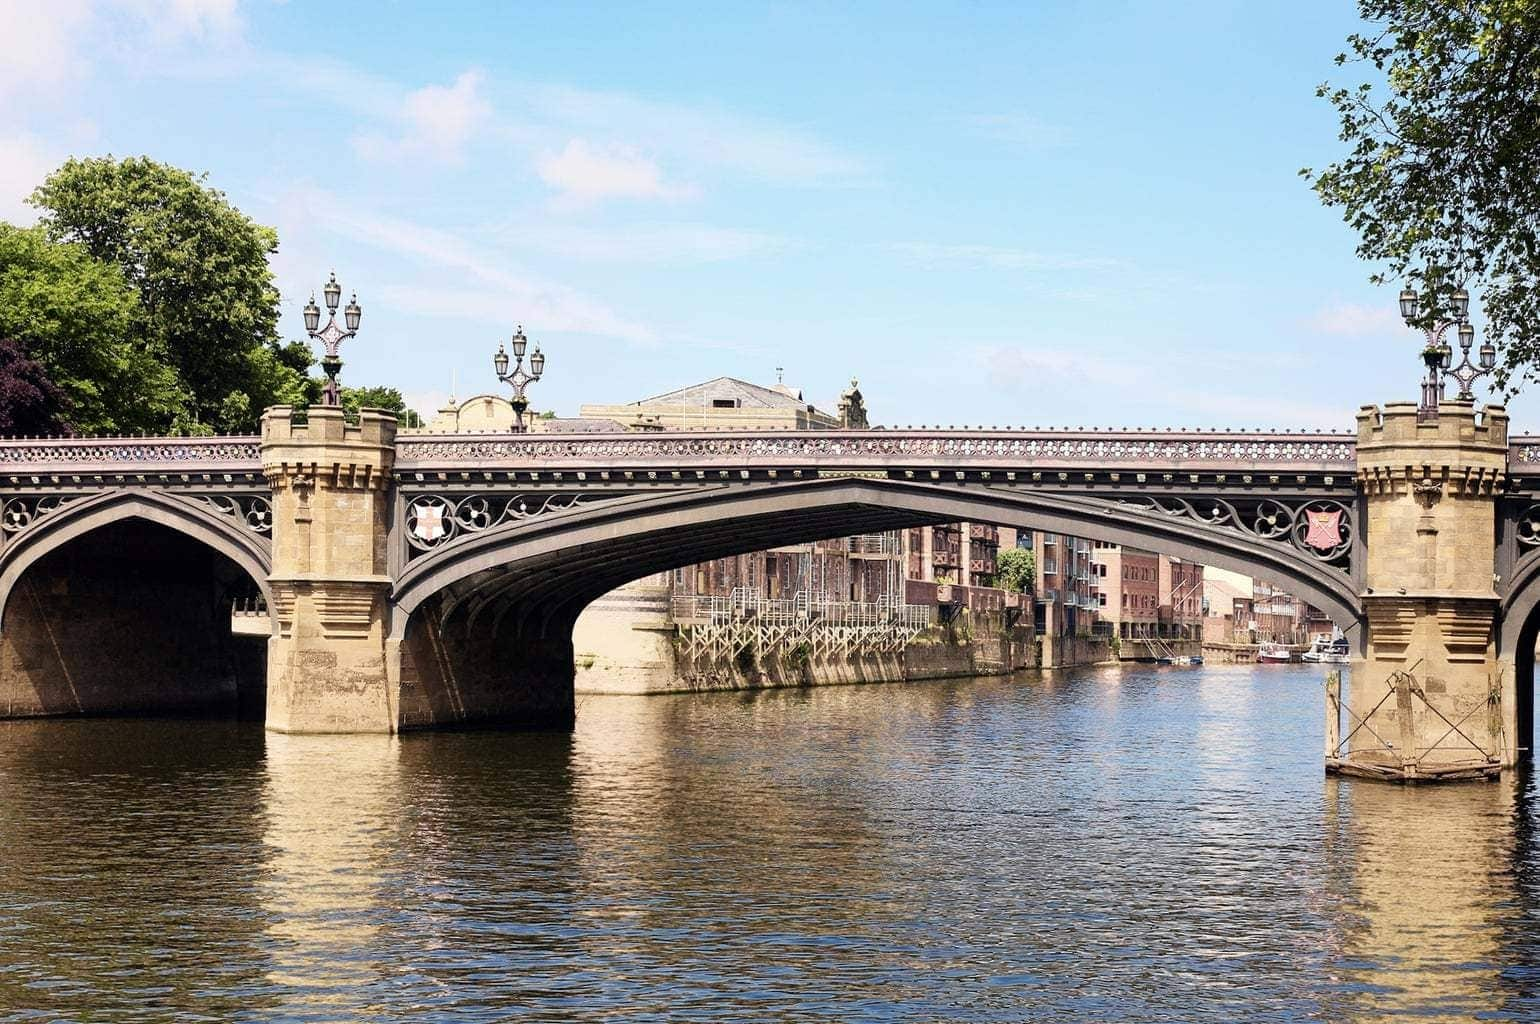 10 Things to do in York with Kids